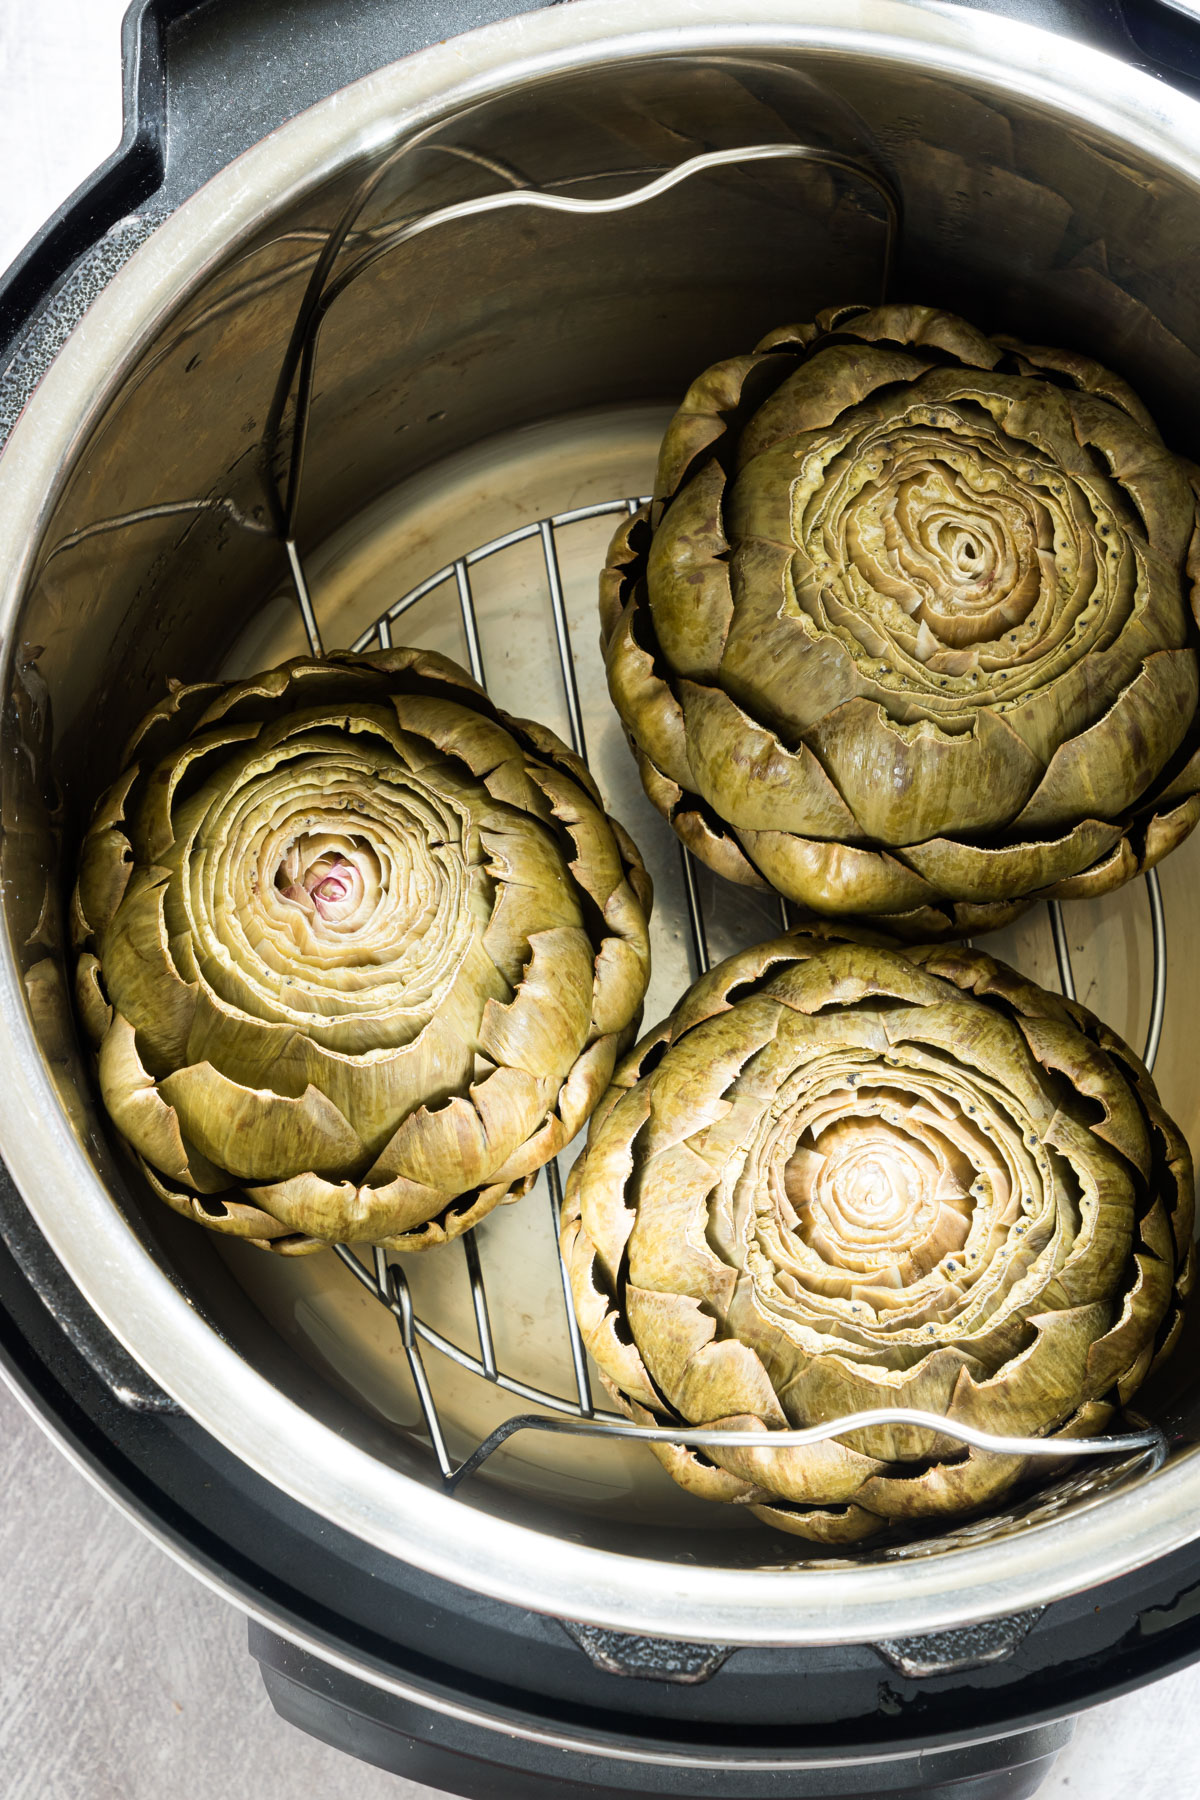 3 cooked artichokes in the instant pot